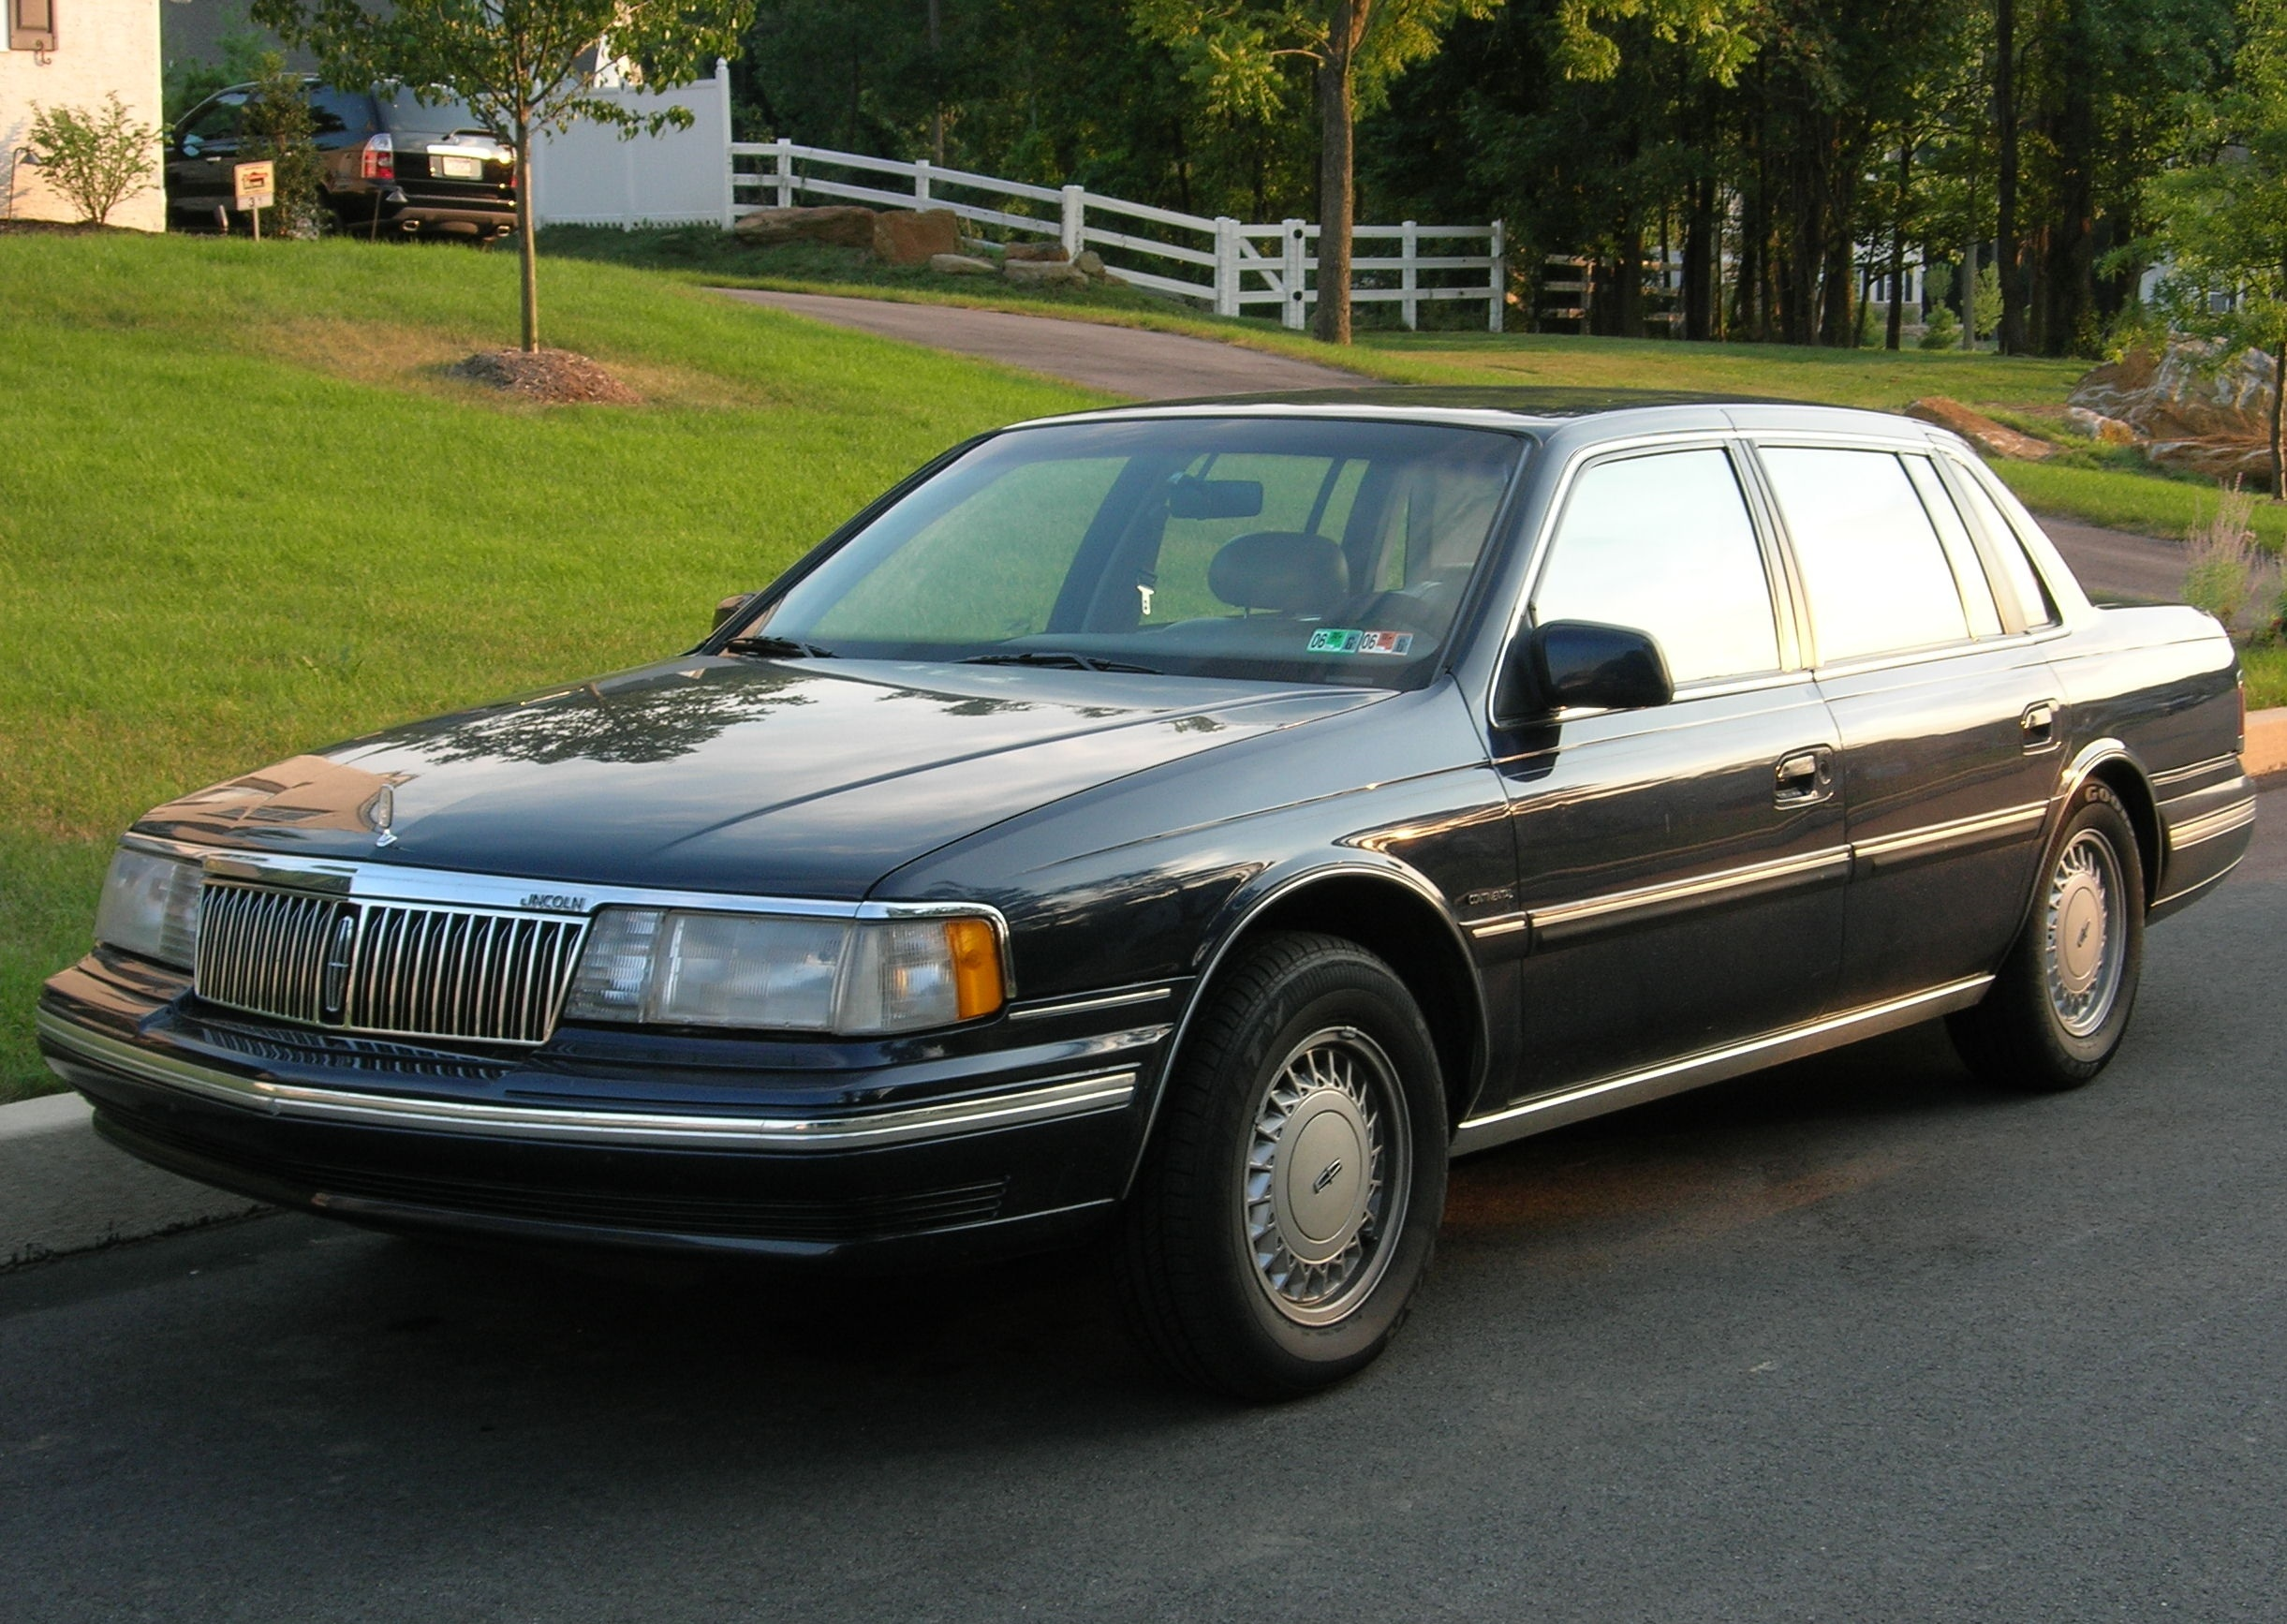 File A 1991 Lincoln Continental Jpg Wikimedia Commons